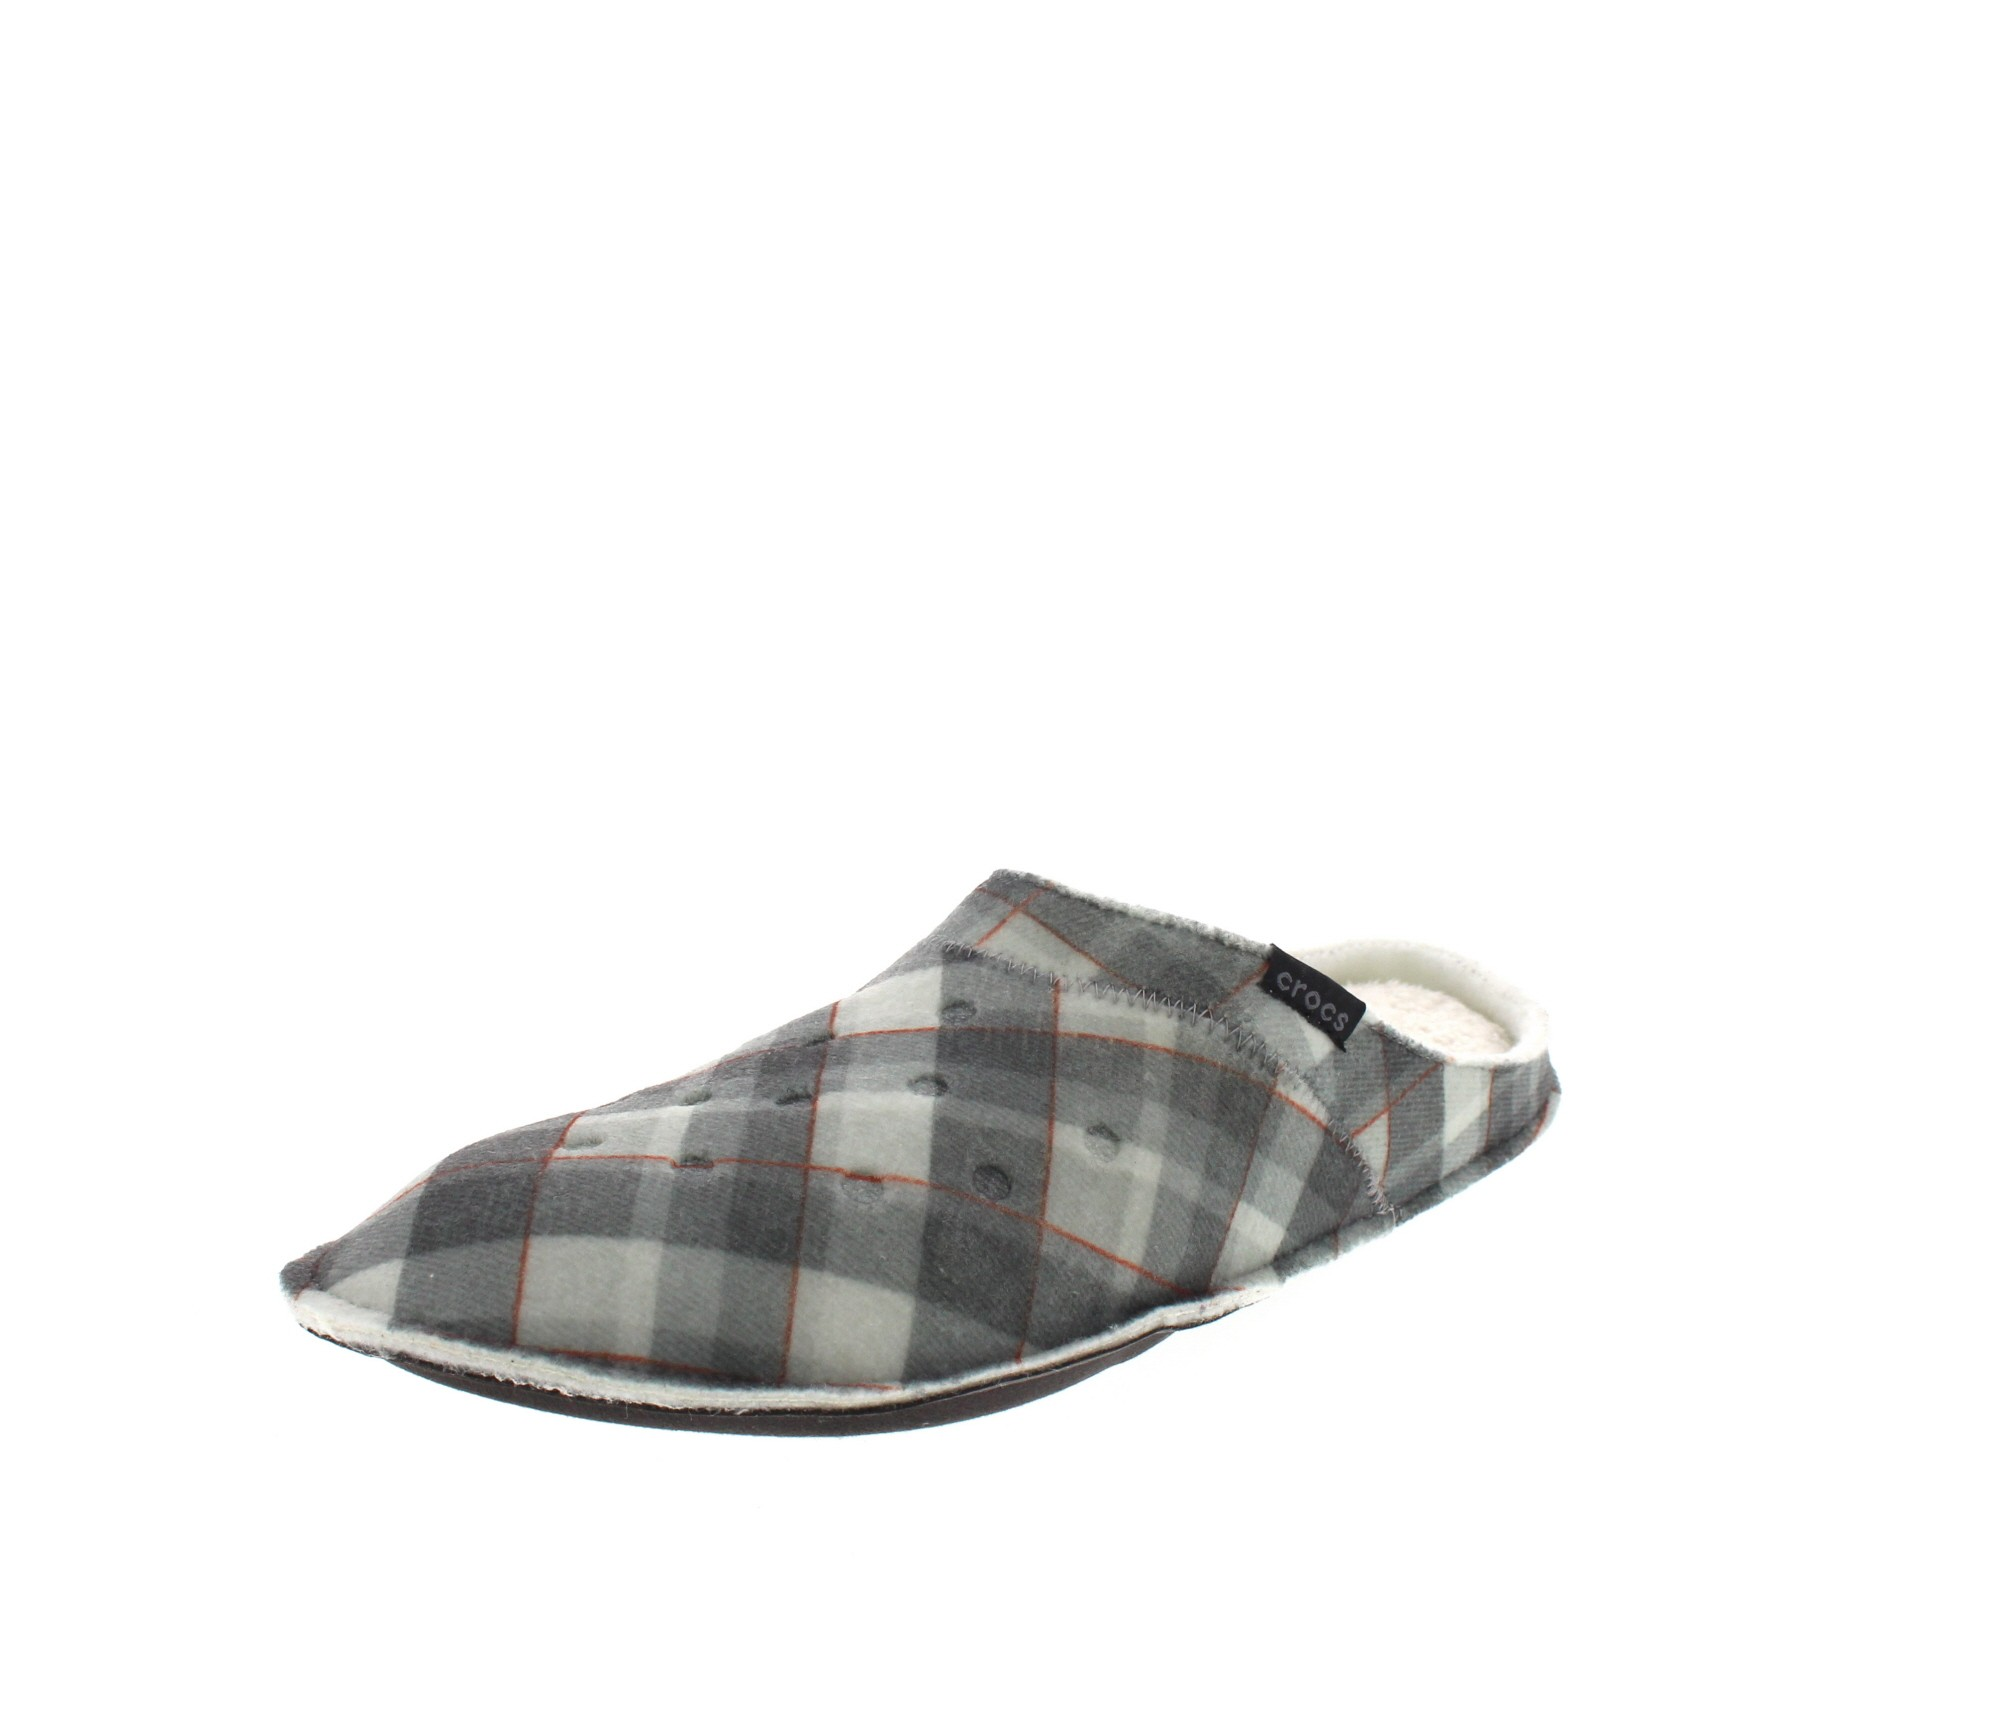 CROCS Hausschuhe - CLASSIC PLAID SLIPPER - black oat_5